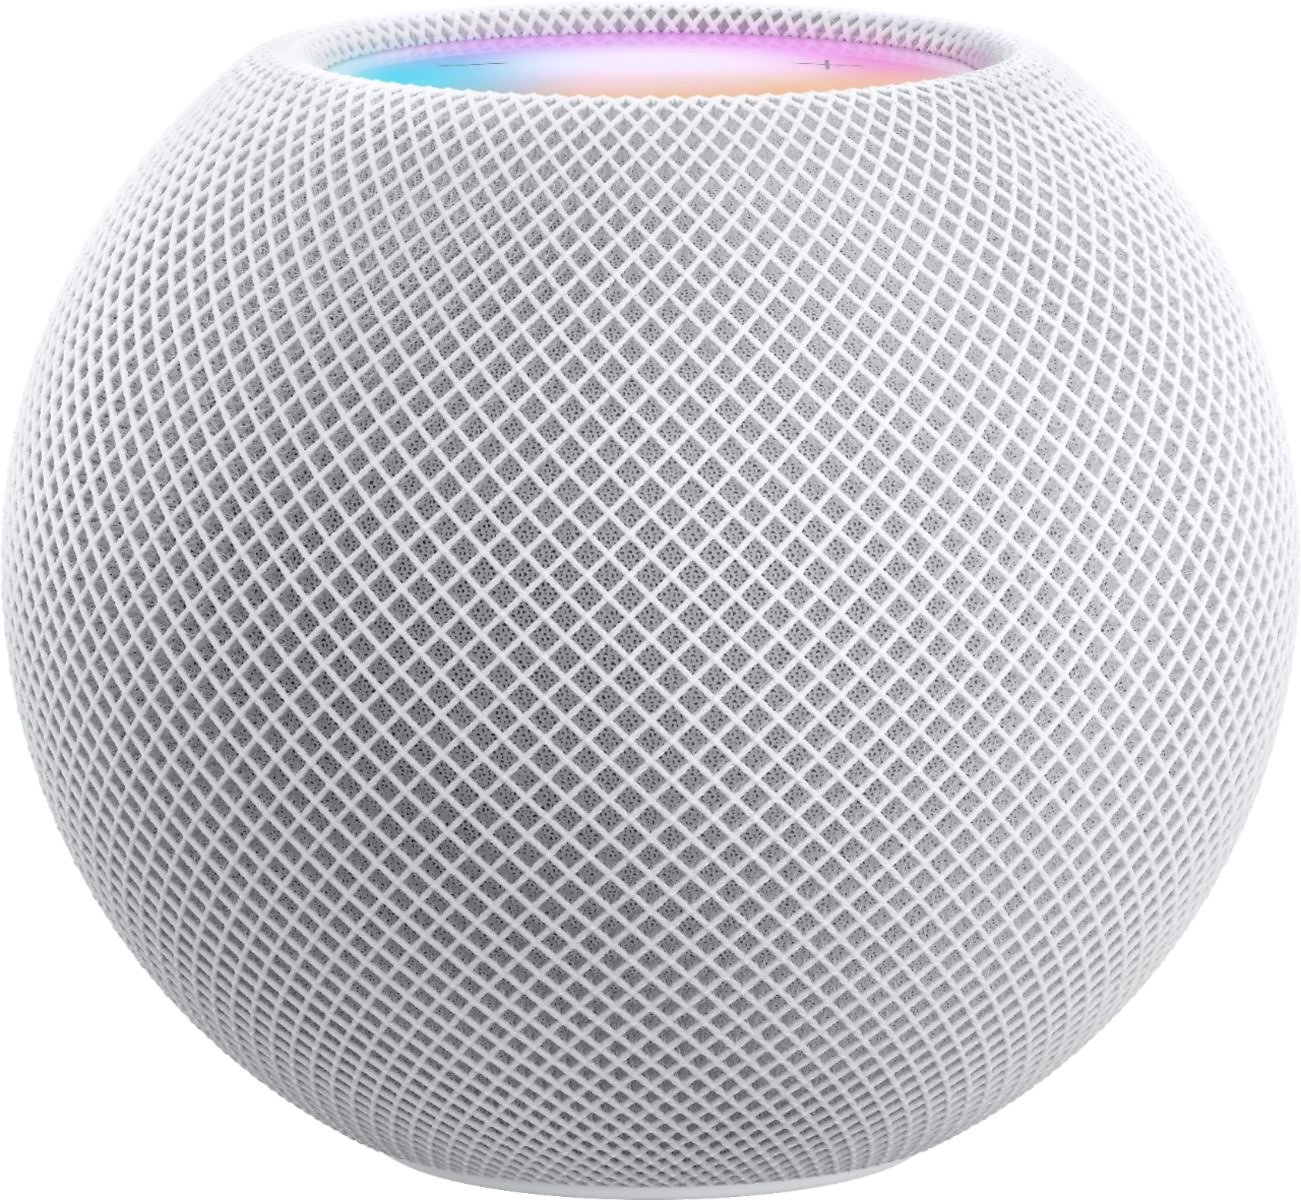 Coming Soon! Apple HomePod Mini (White, Black)